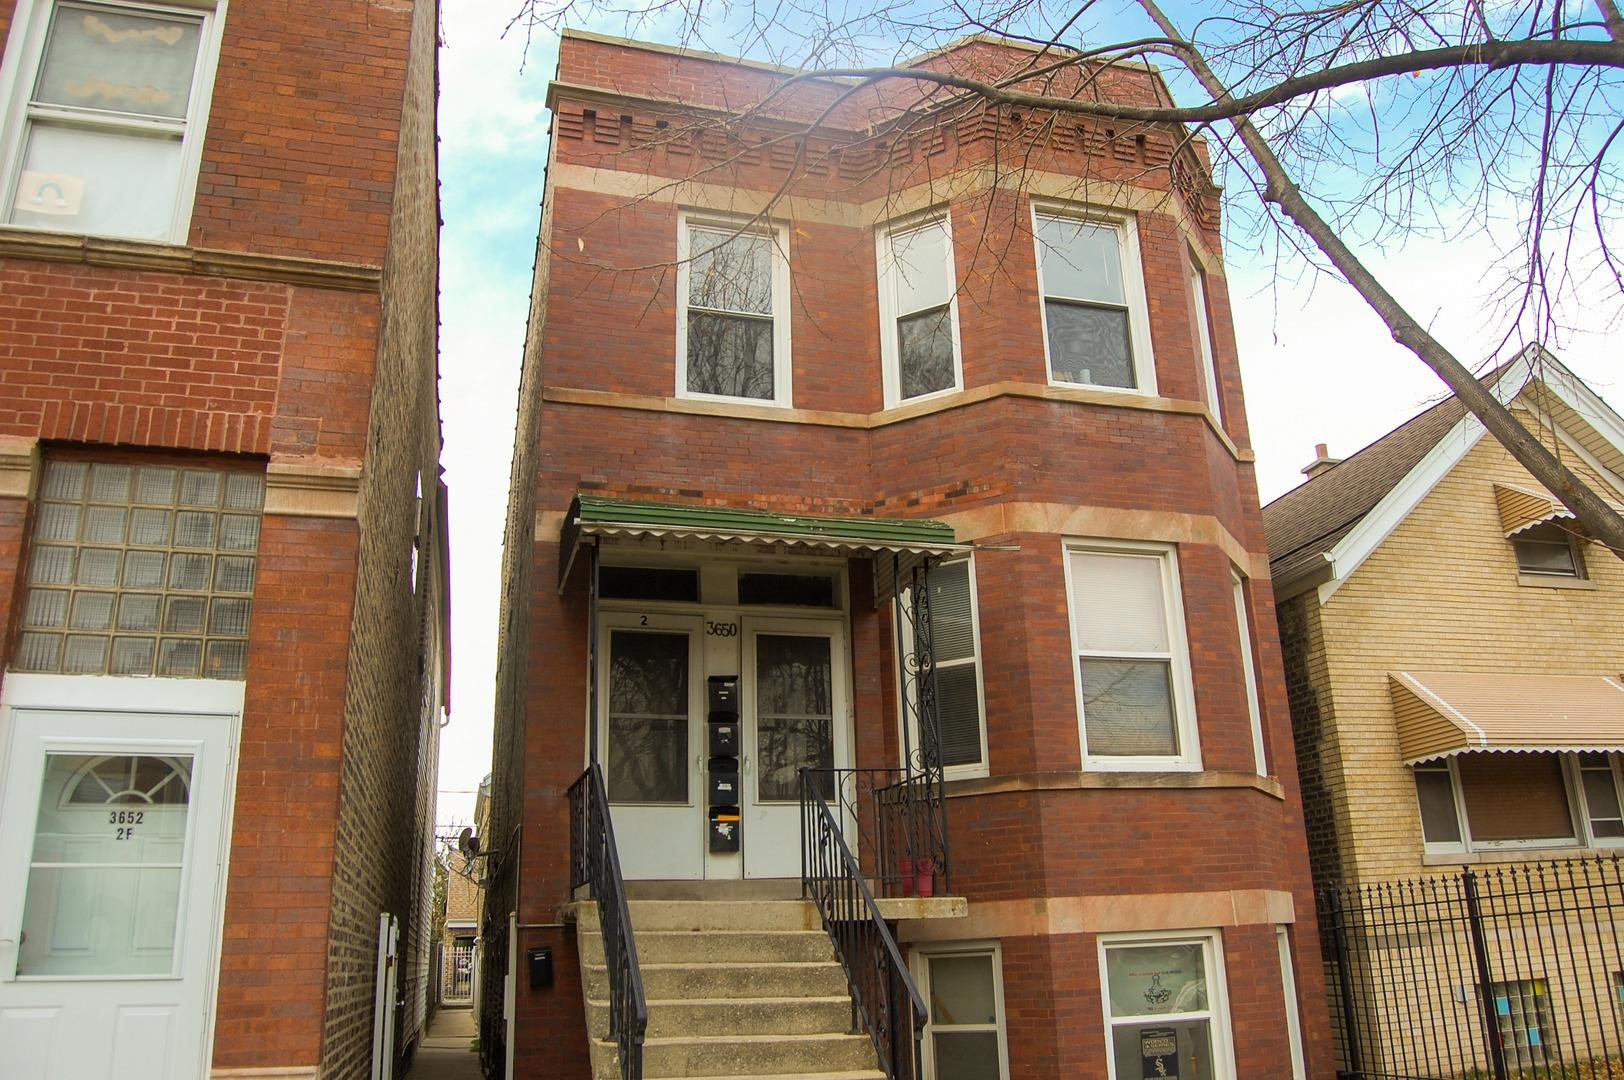 3650 S Wolcott Avenue, Chicago, IL 60609 - #: 10940273